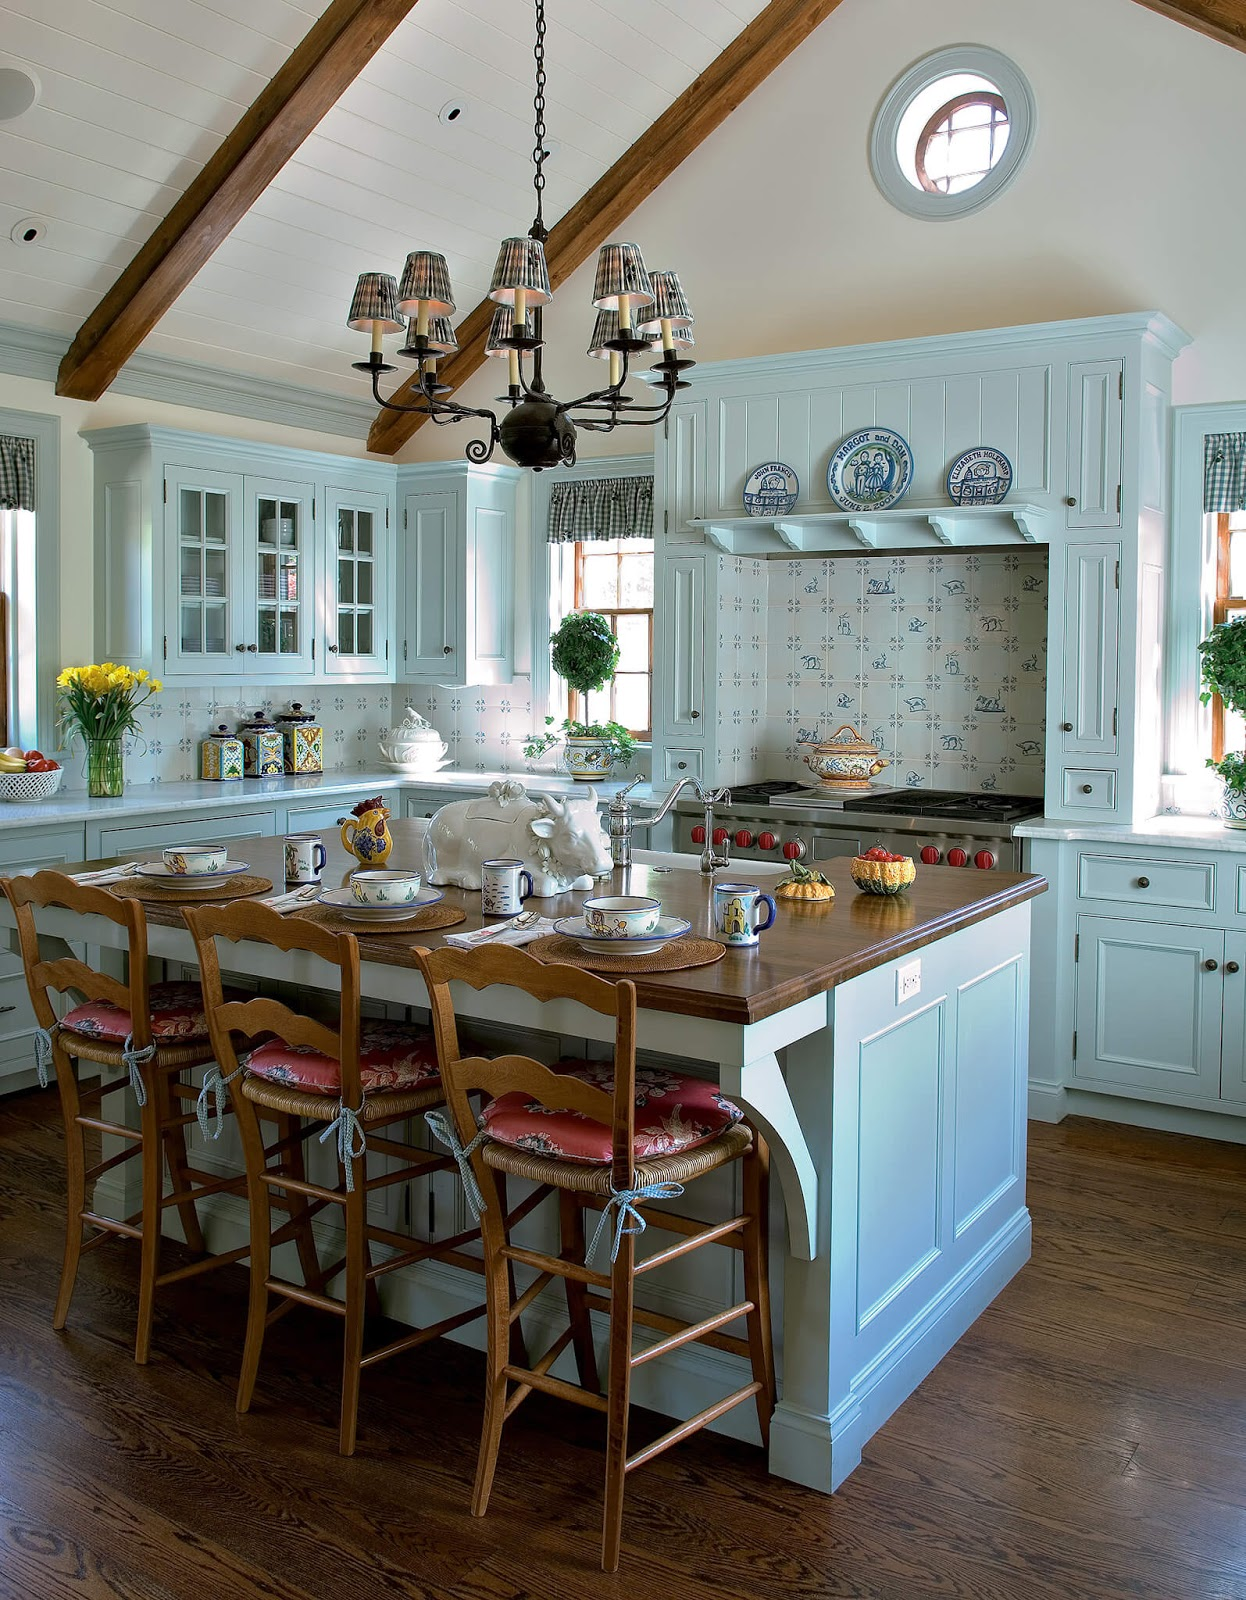 15 Cabinets for the Rustic Kitchen of Your Dreams ~ DIY Crafts&Hacks